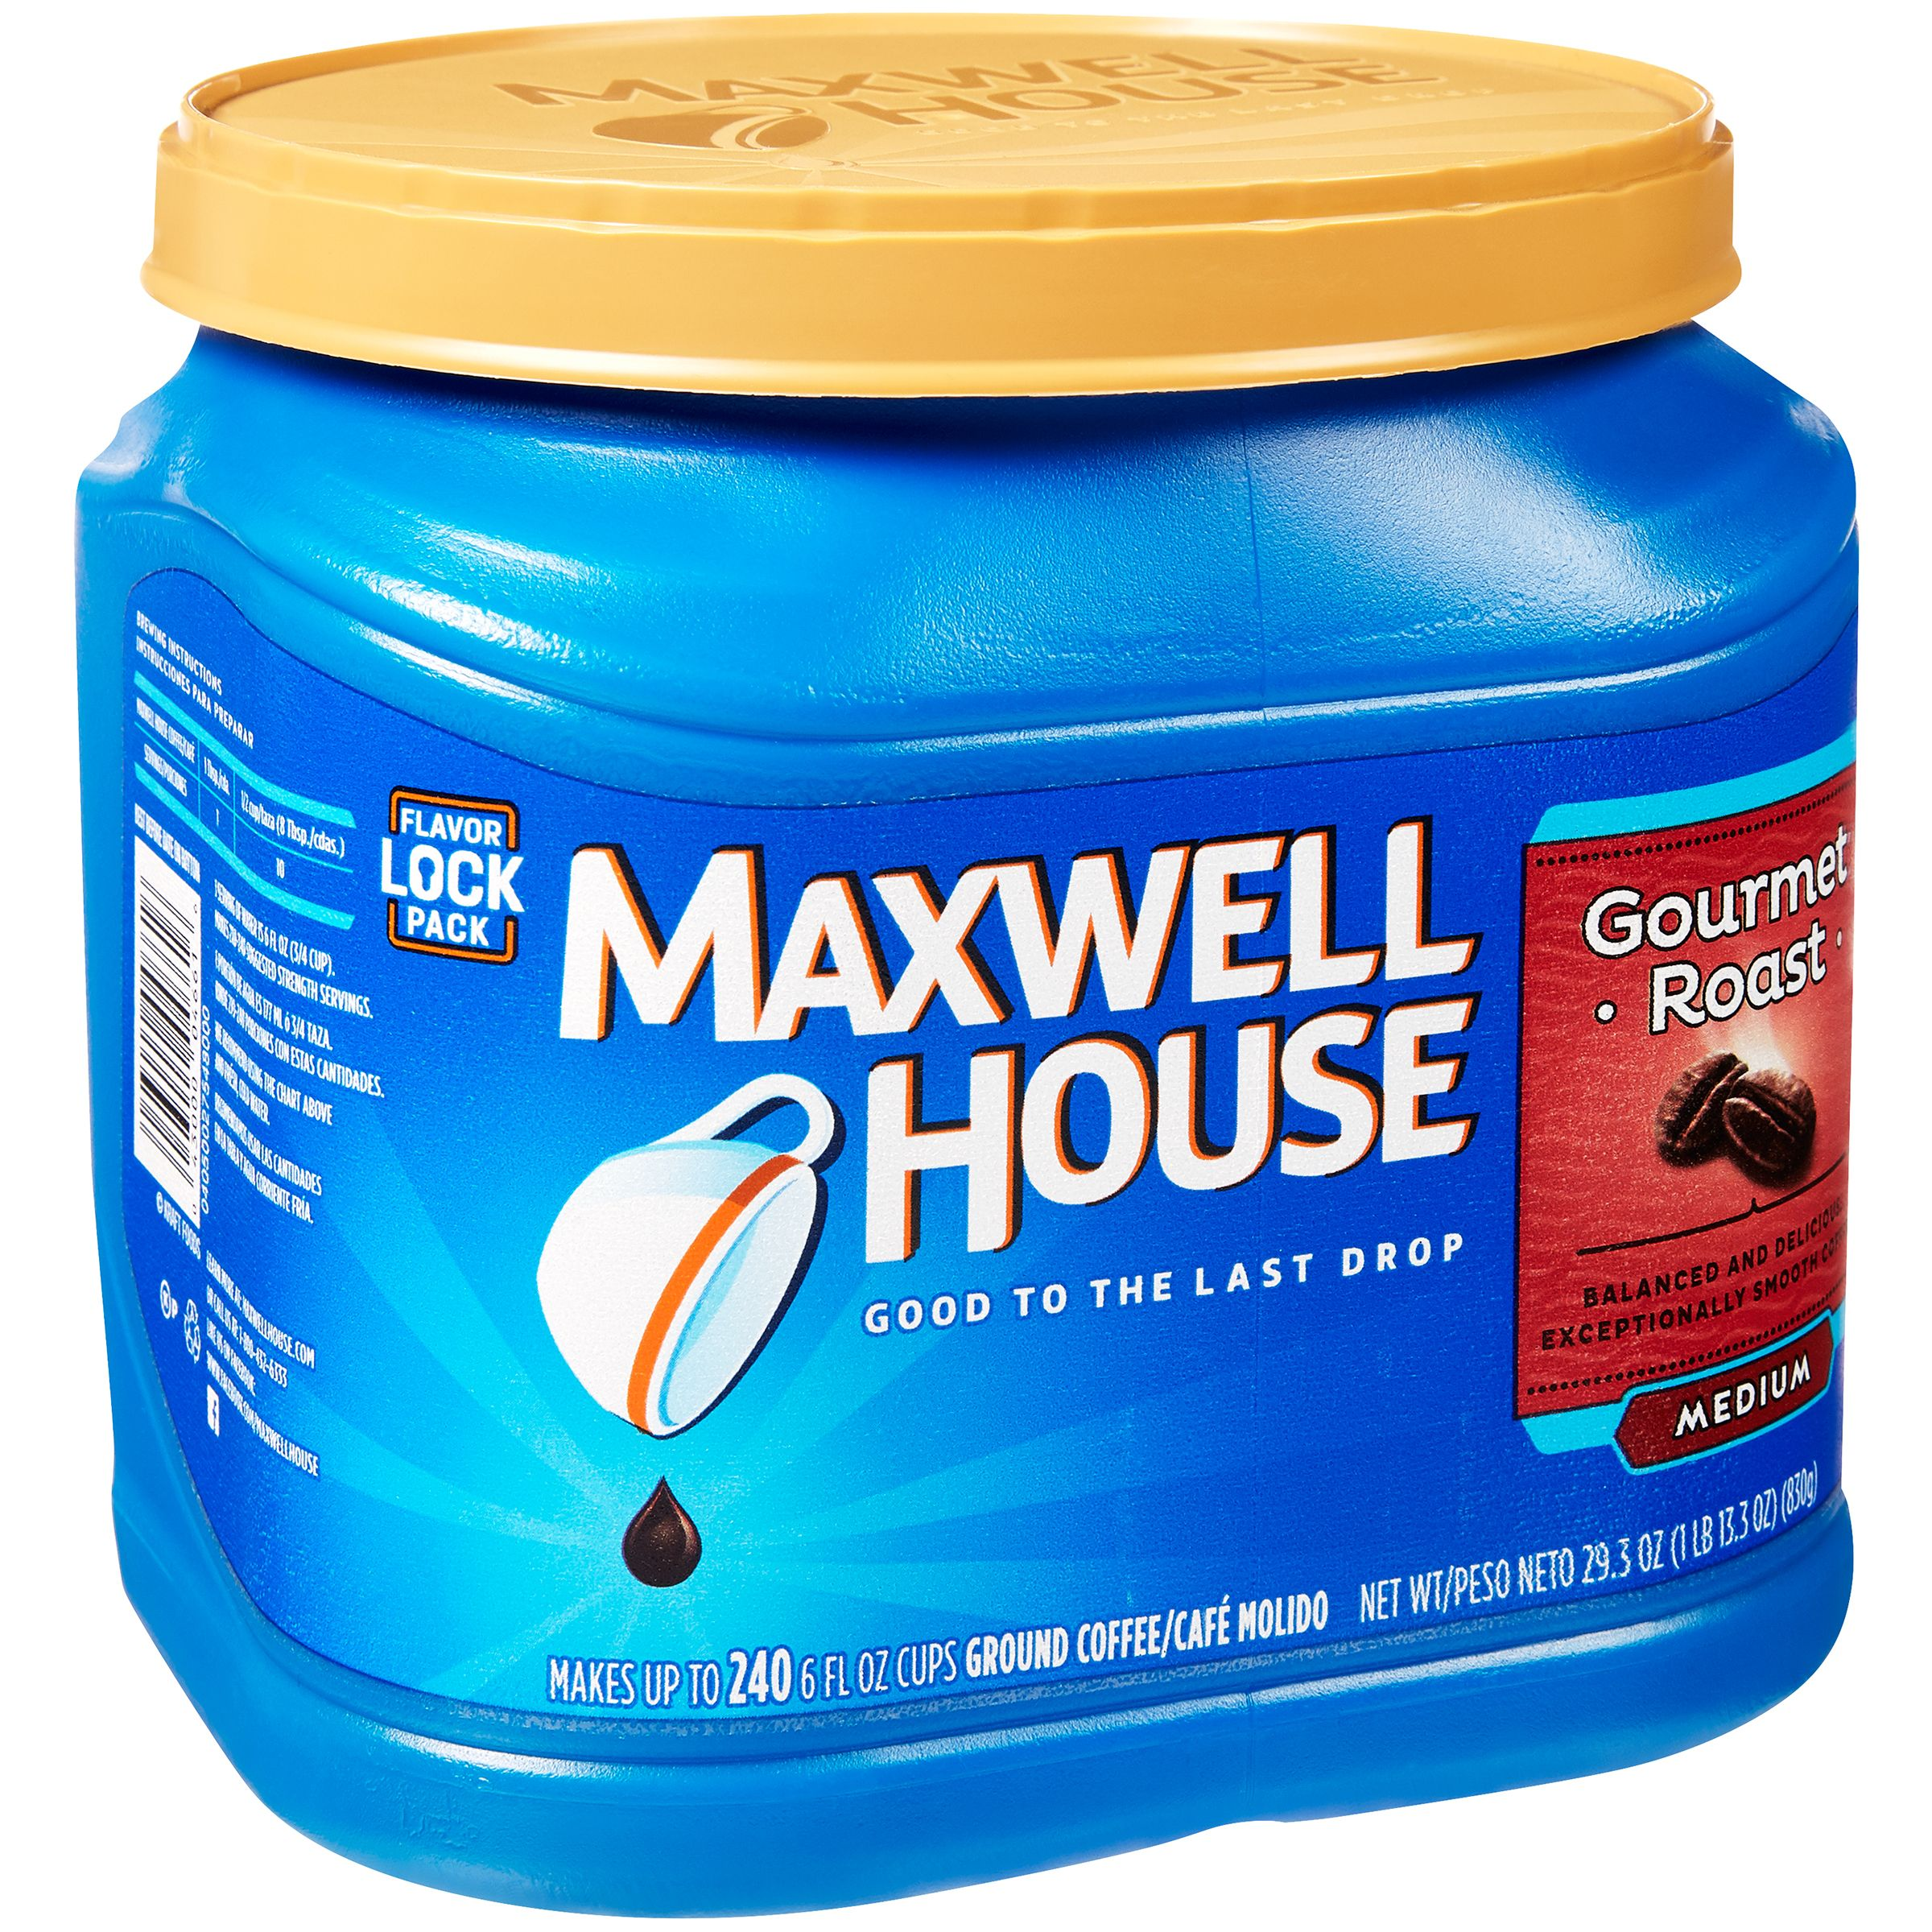 Maxwell House Gourmet Medium Roast Ground Coffee, 29.3 OZ (830g) Canister